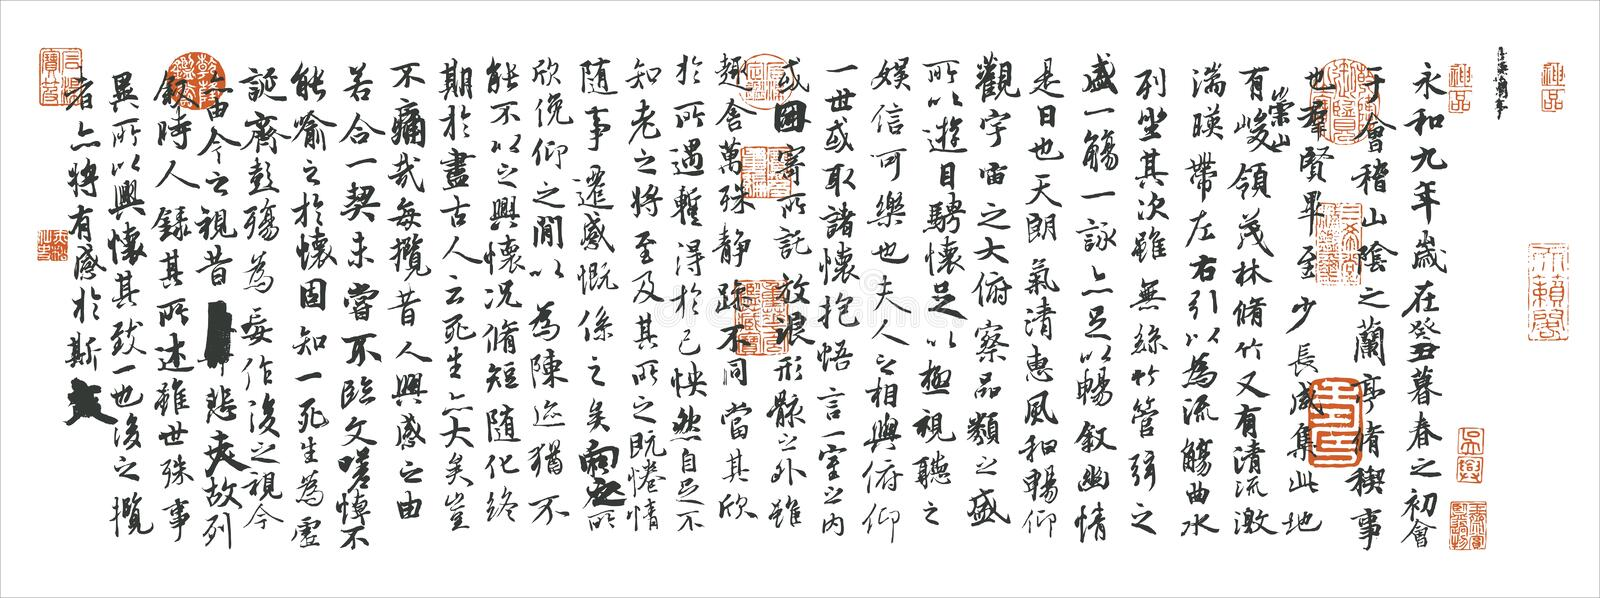 Calligraphy for Wangxizhi. In more than 1,000 years ago